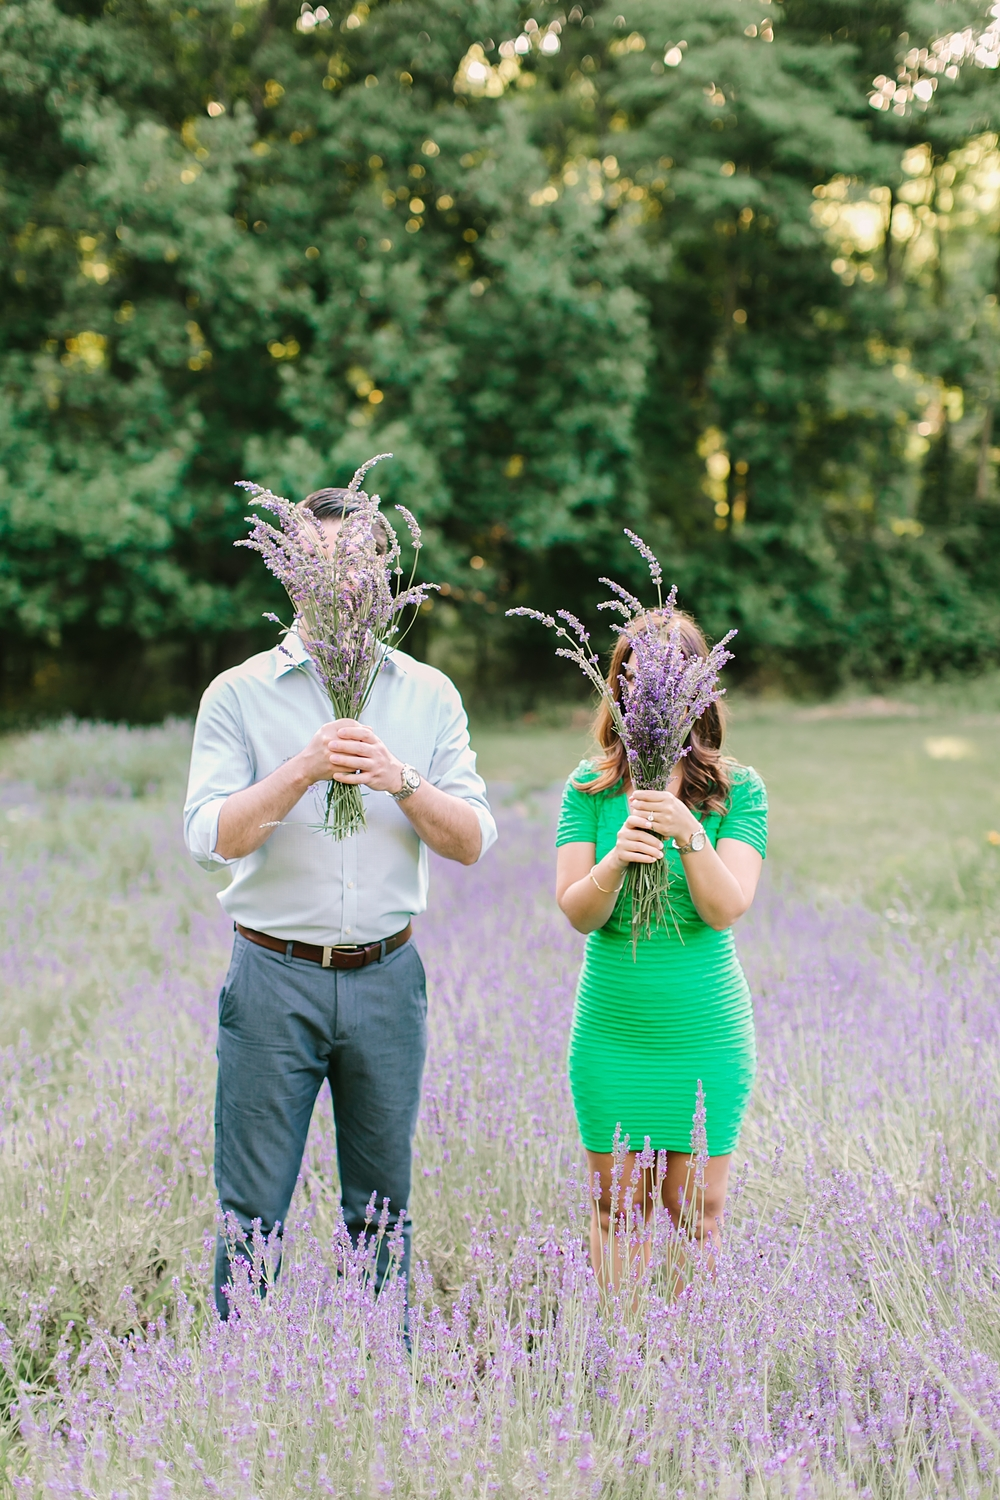 pleasant_valley_lavender_farm_nj_engagement_photos21.jpg